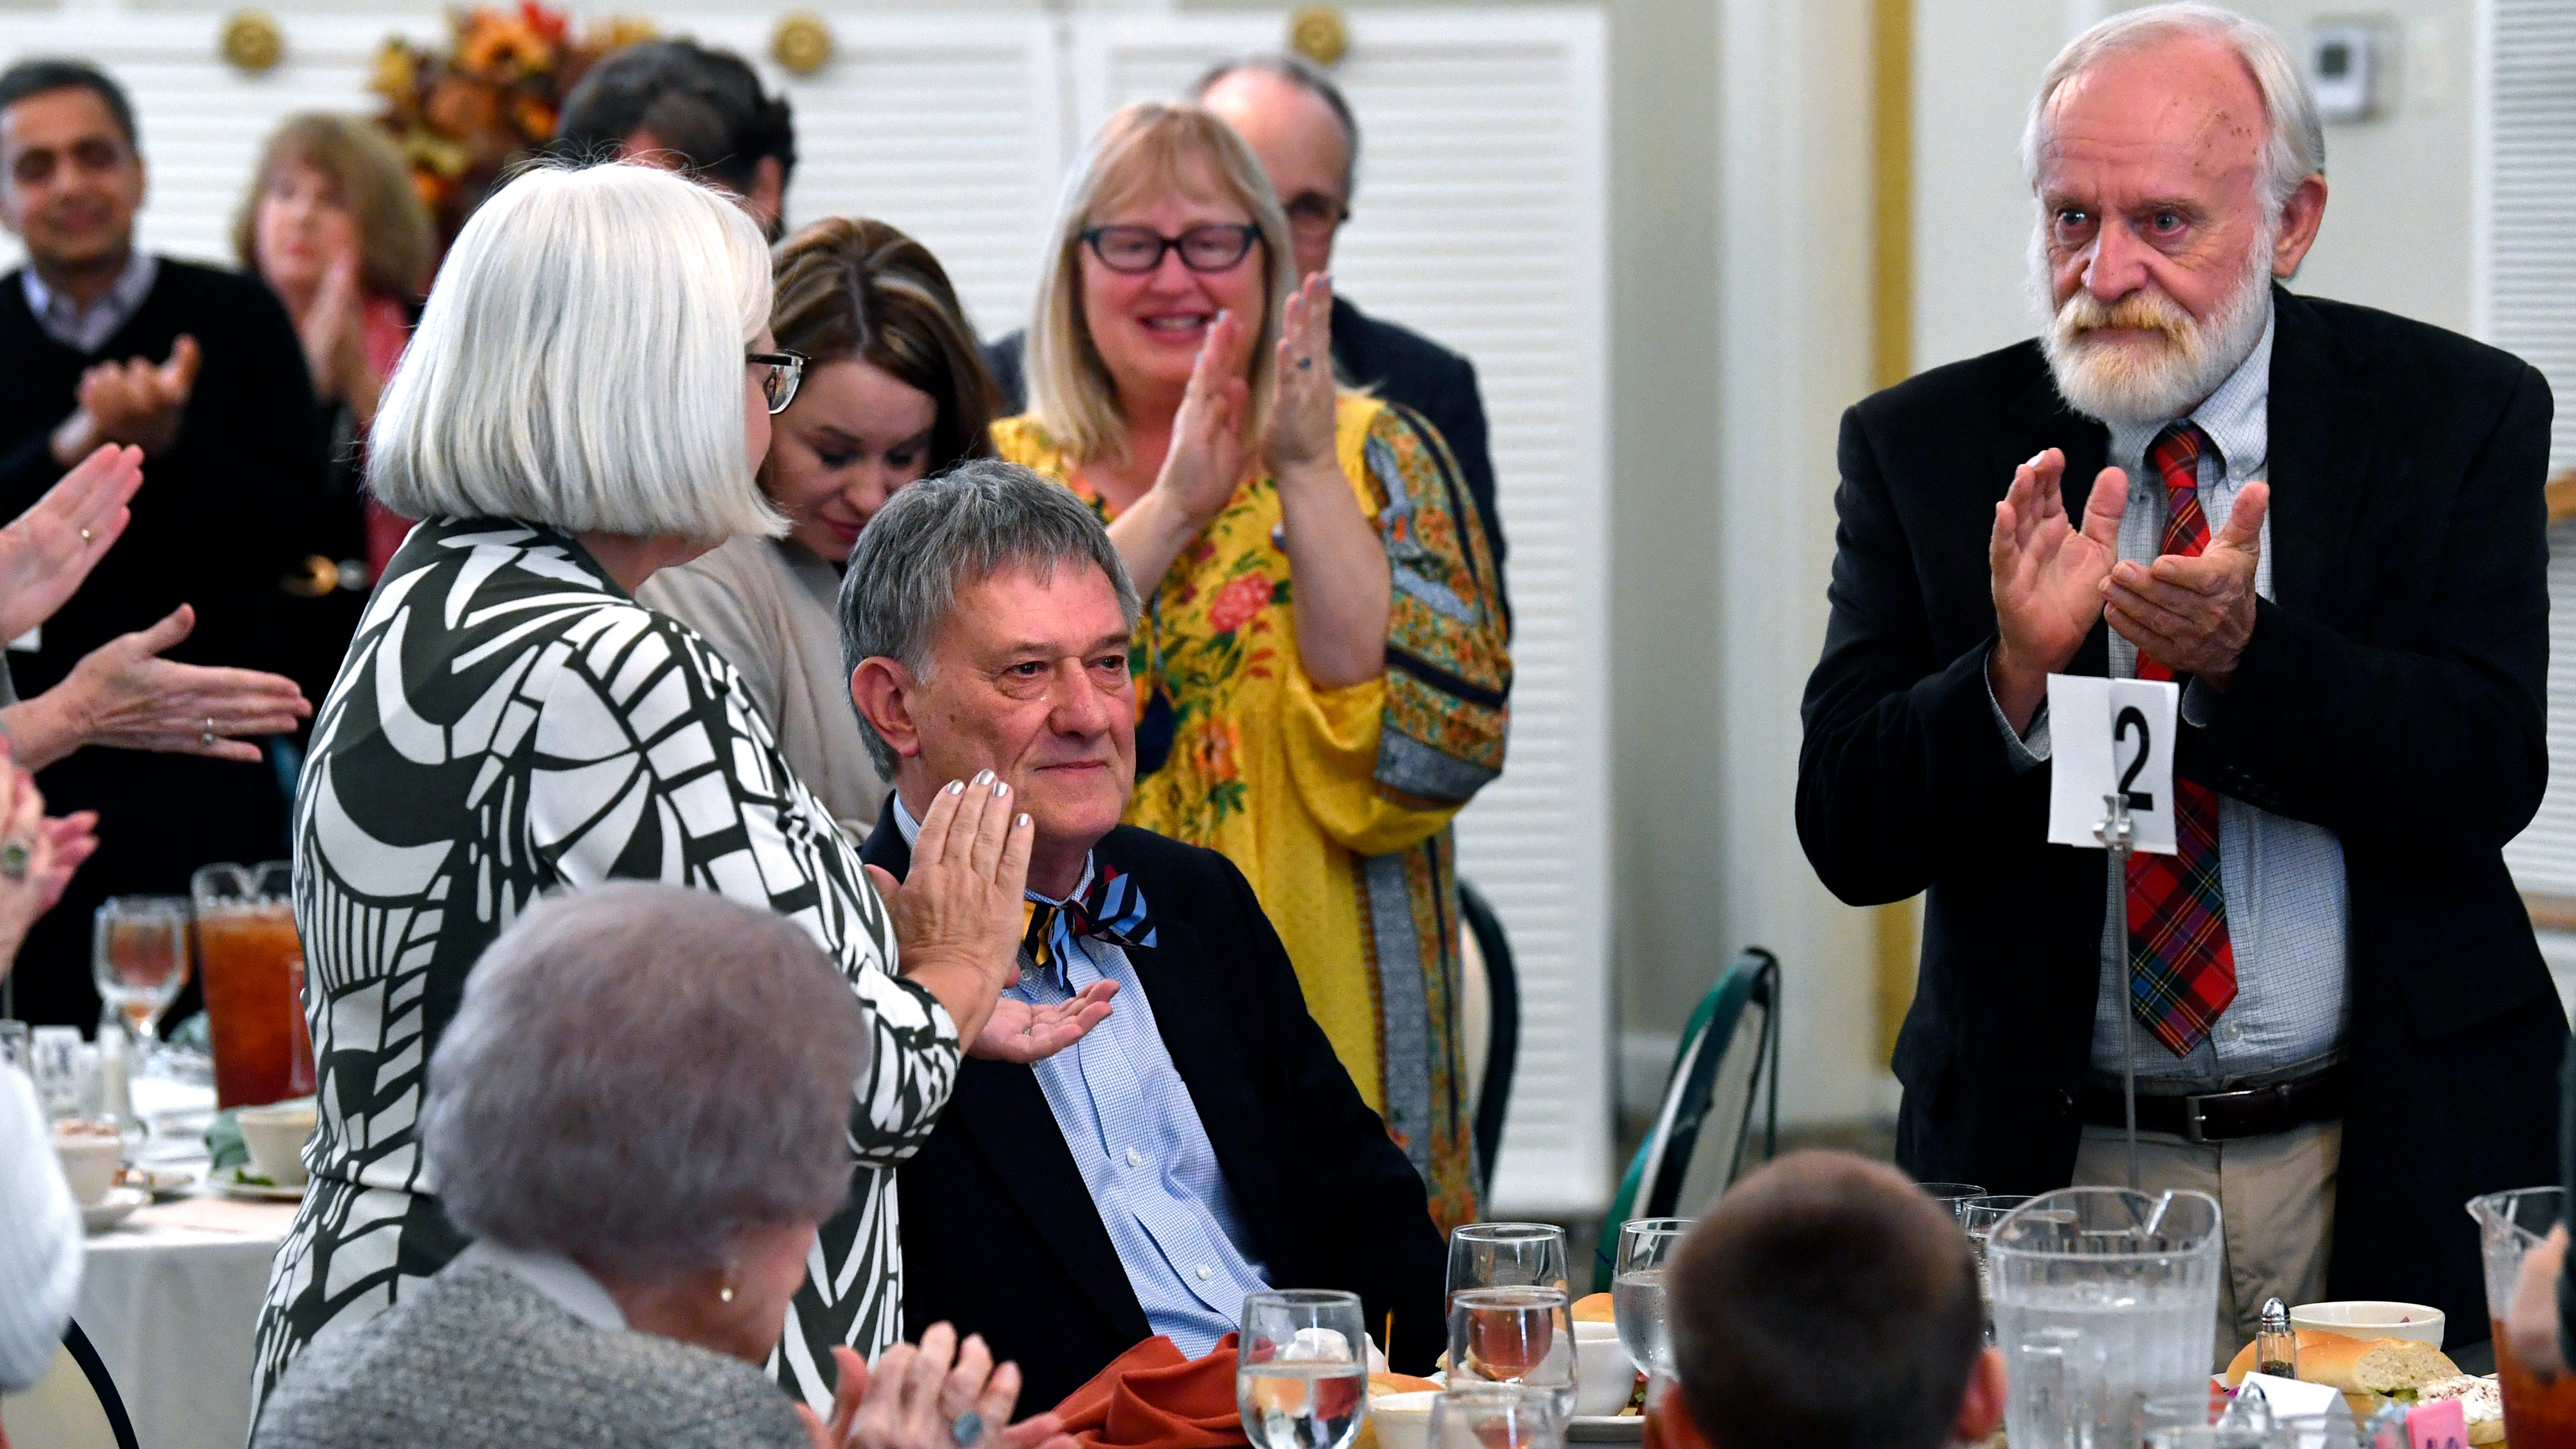 Colleagues and friends applaud Glenn Dromgoole after he accepted the A.C. Green Award during the Boots & Books Luncheon Saturday Oct. 20, 2018 at the Abilene Woman's Club. The award is presented to distinguished Texas authors by the West Texas Book Festival, of which Dromgoole is a past chair.